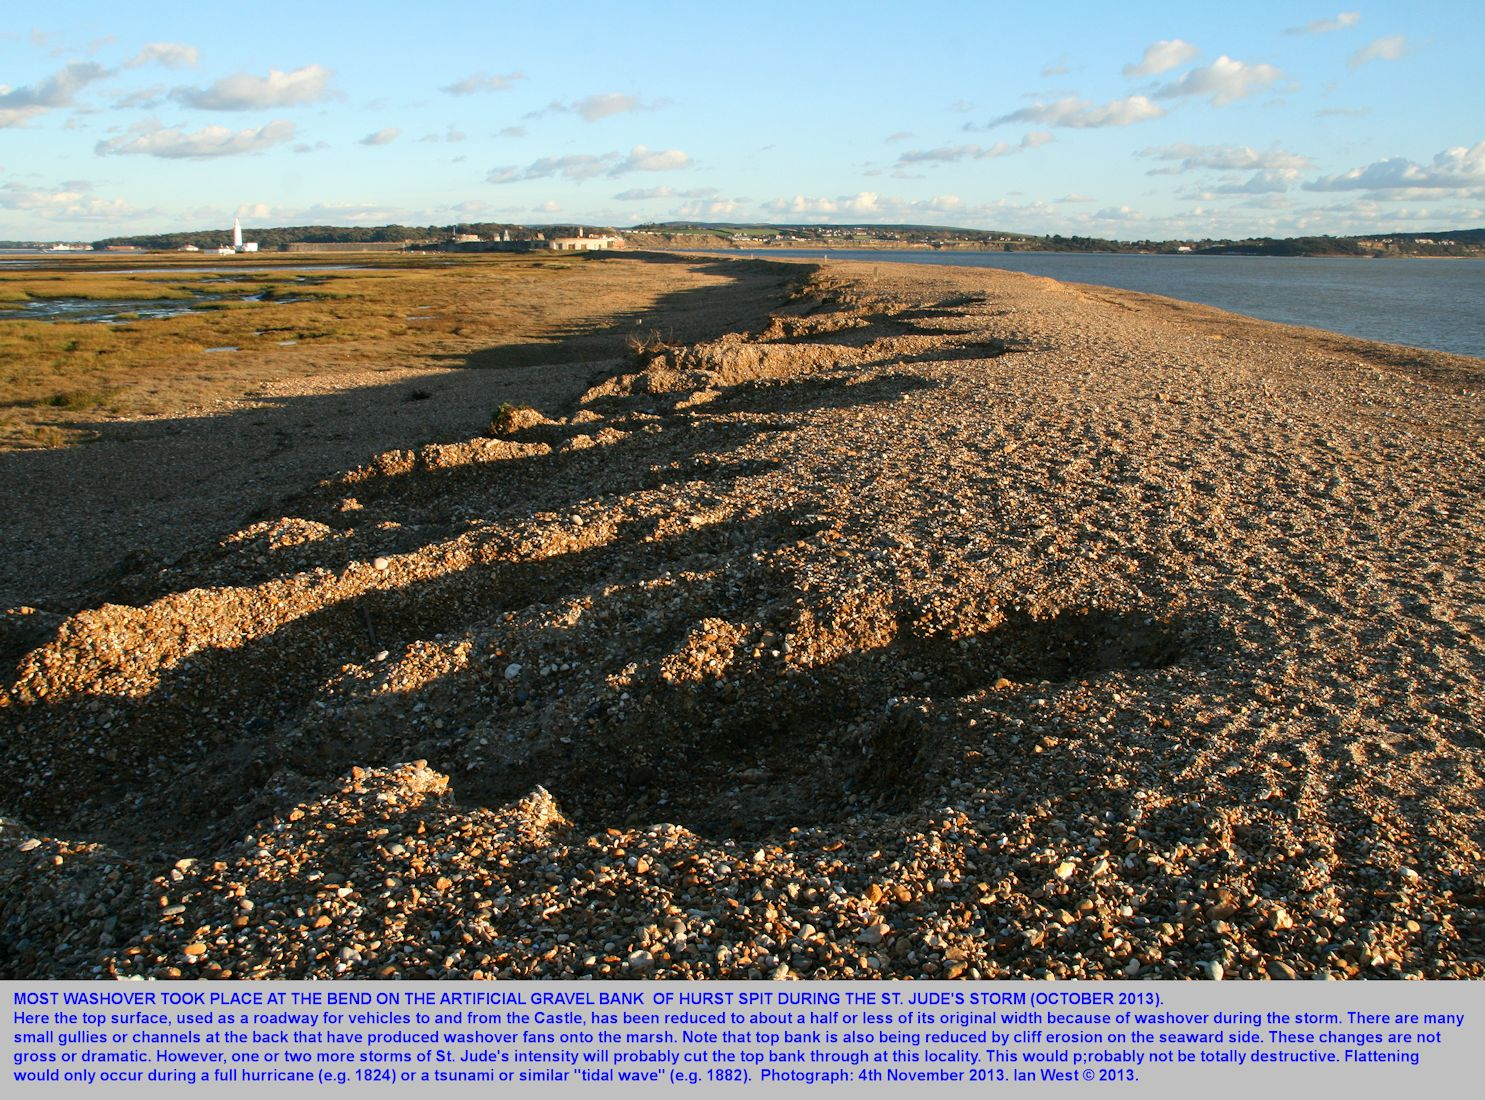 Washover effects at the bend in Hurst Spit, Hampshire, that were the result of the St. Jude's Storm, October 2013